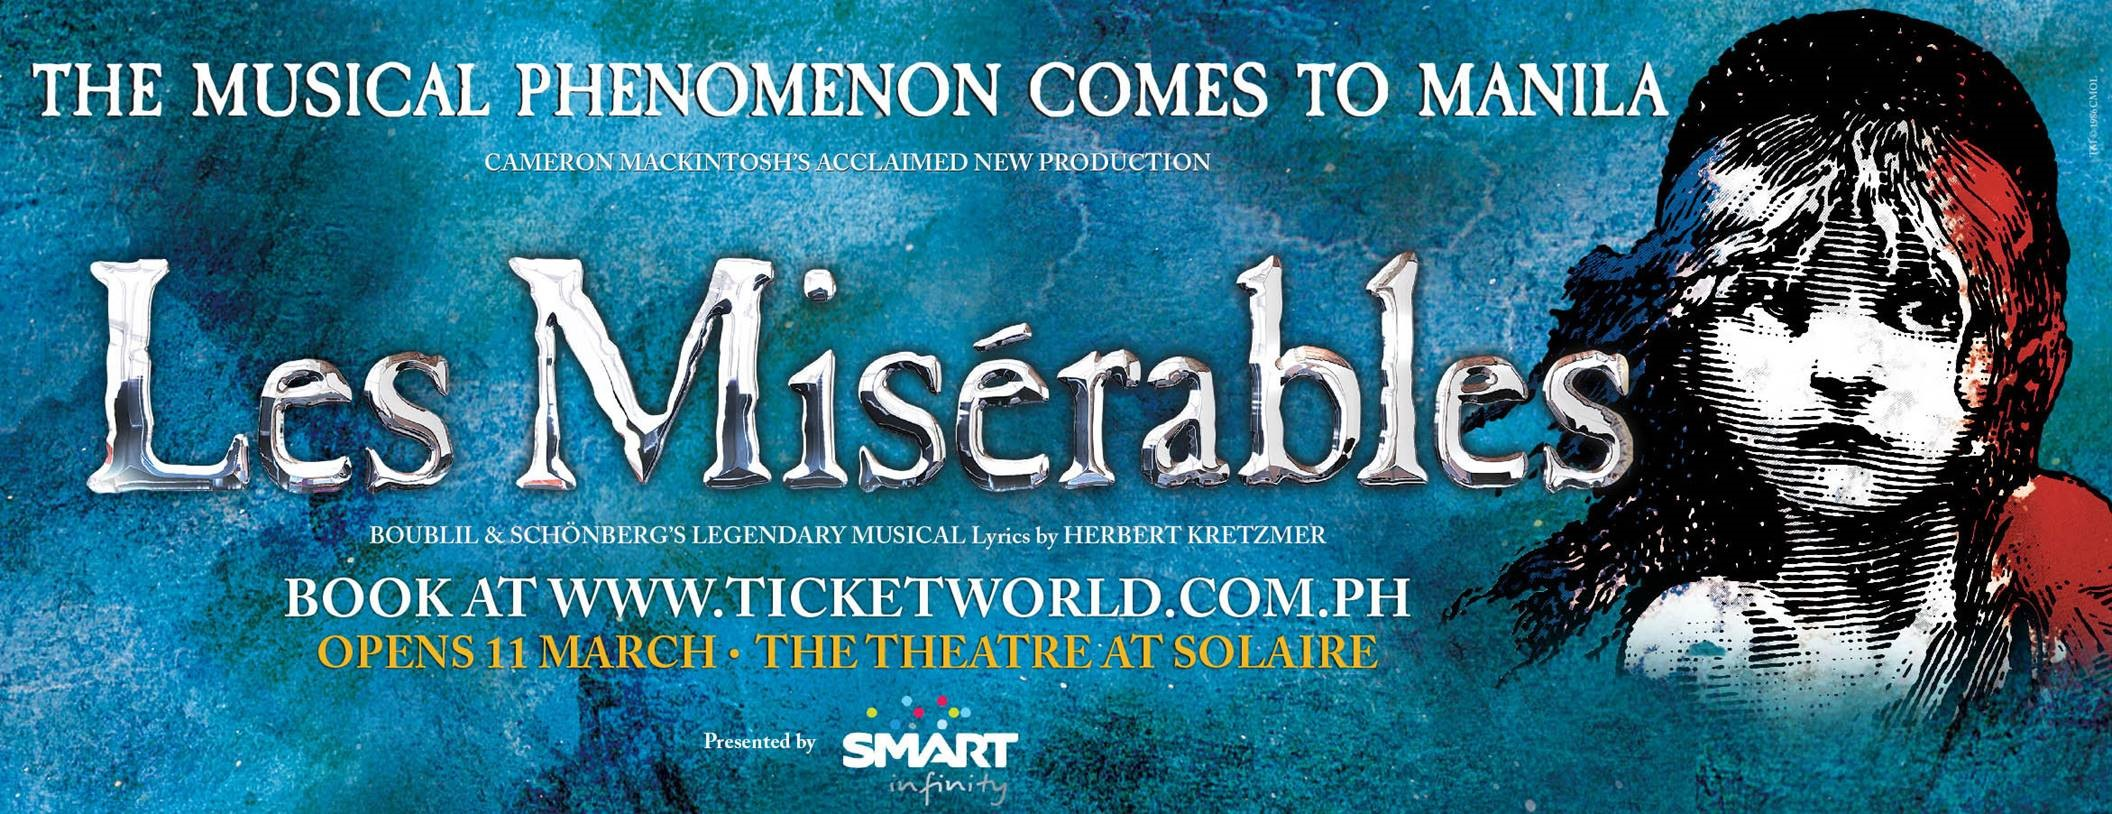 LES MISÉRABLES CONFIRMED TO OPEN IN MANILA IN MARCH 2016